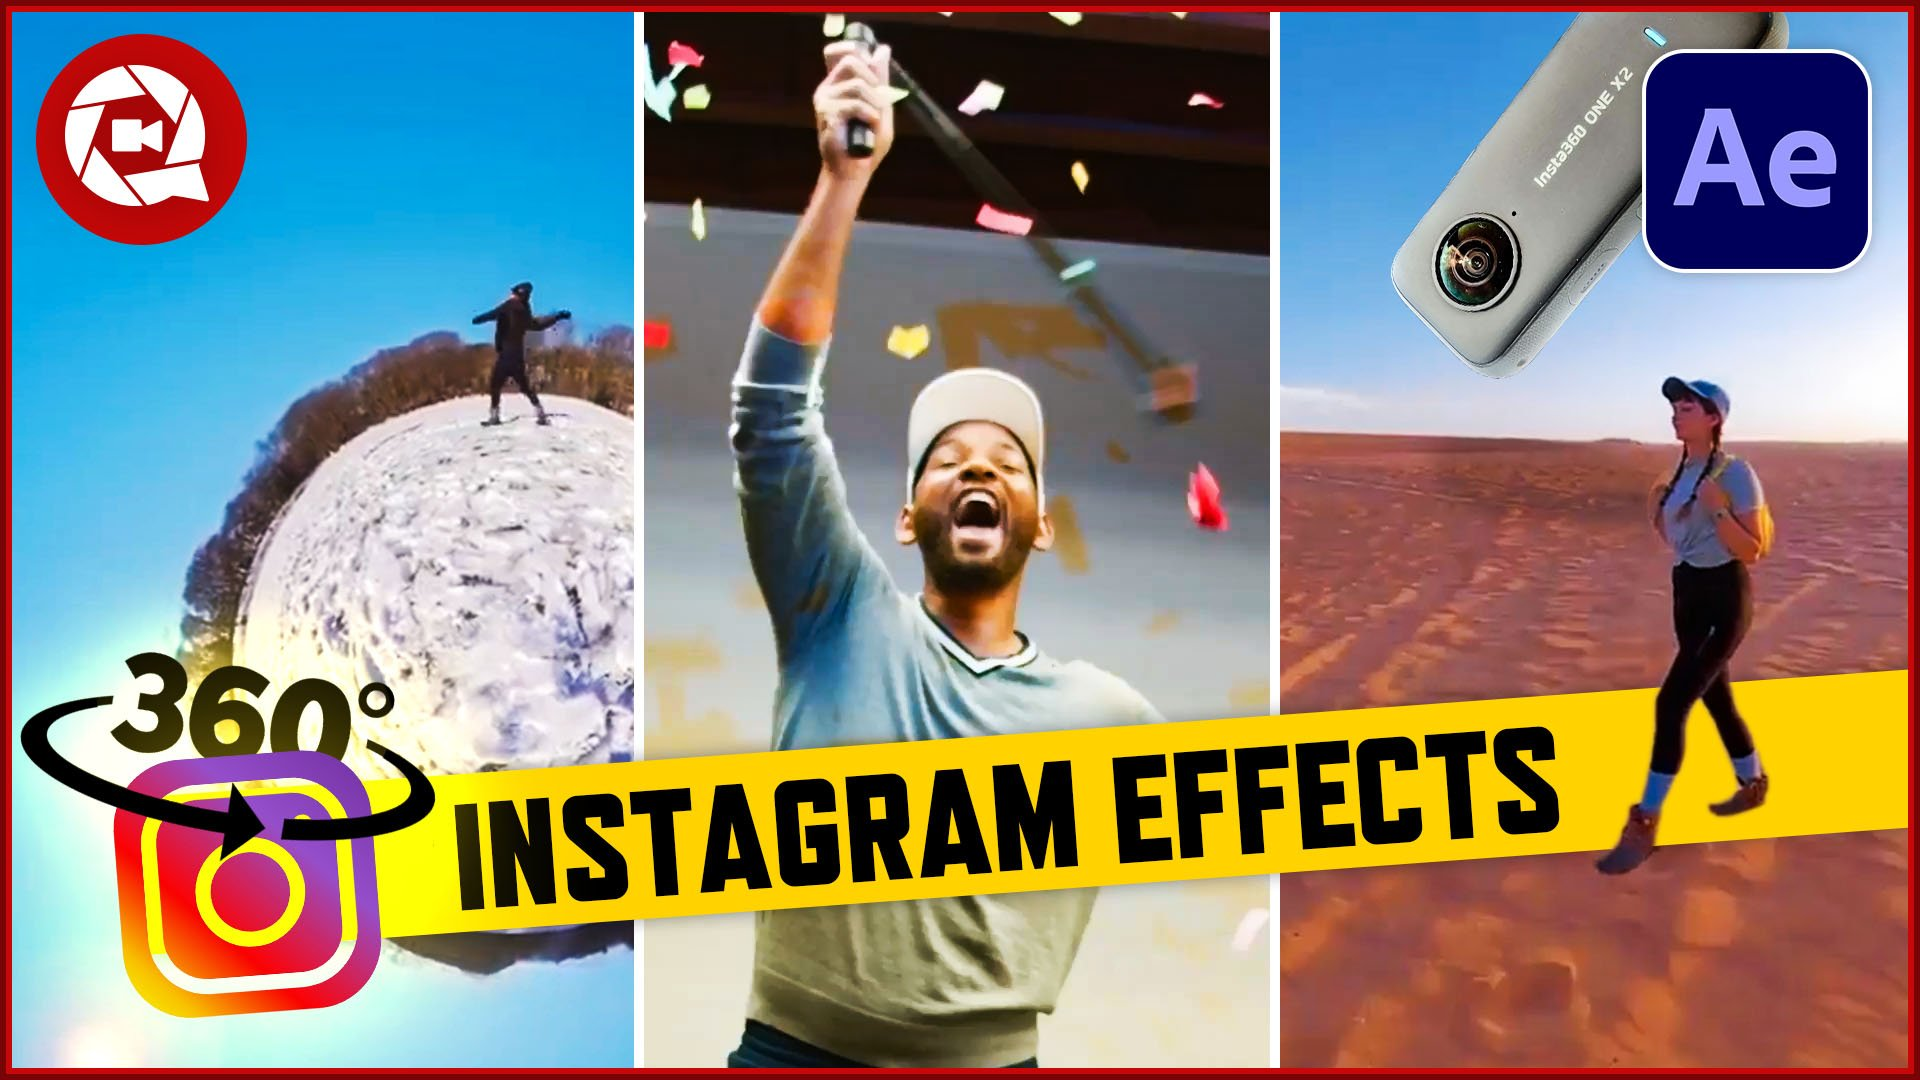 Instagram Effects After Effects